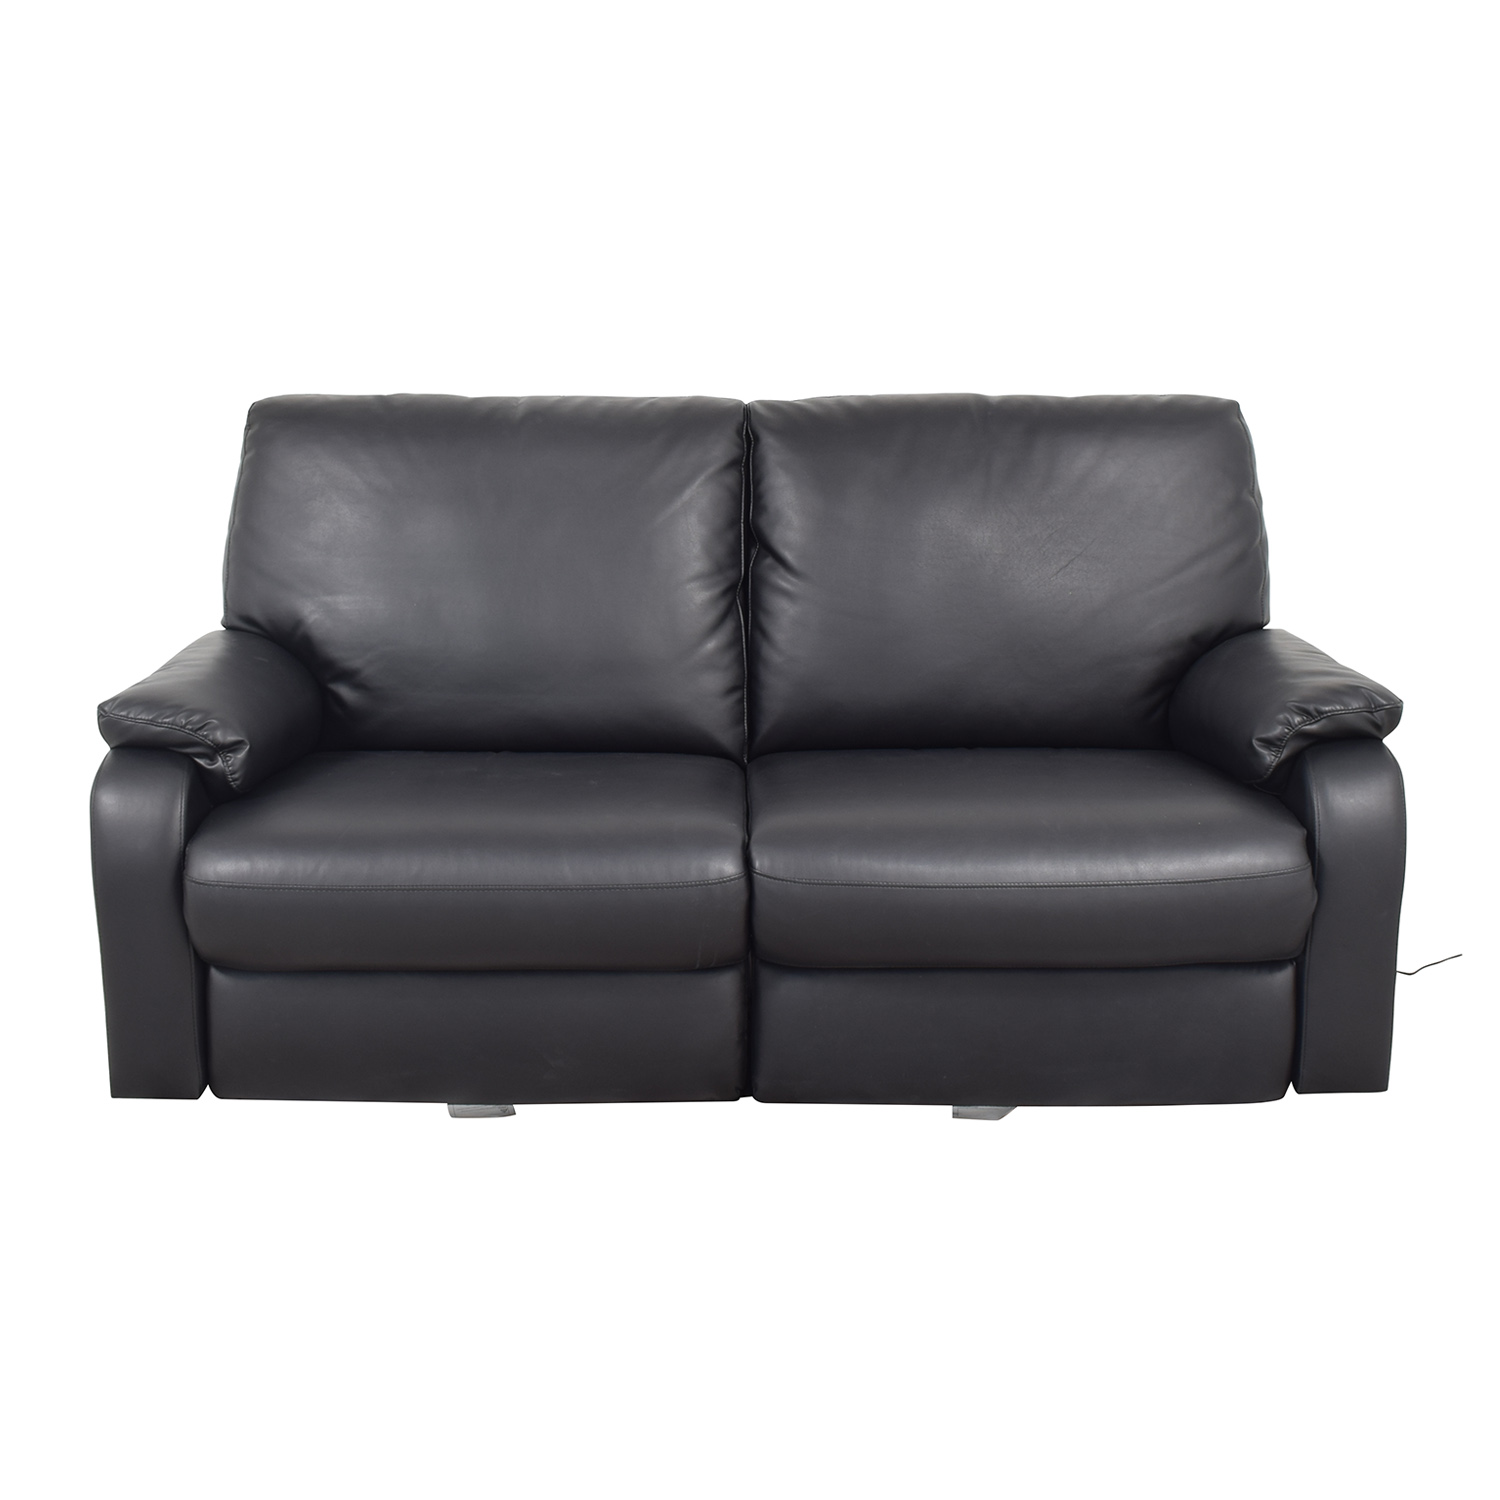 IKEA IKEA Tomback Sofa on sale